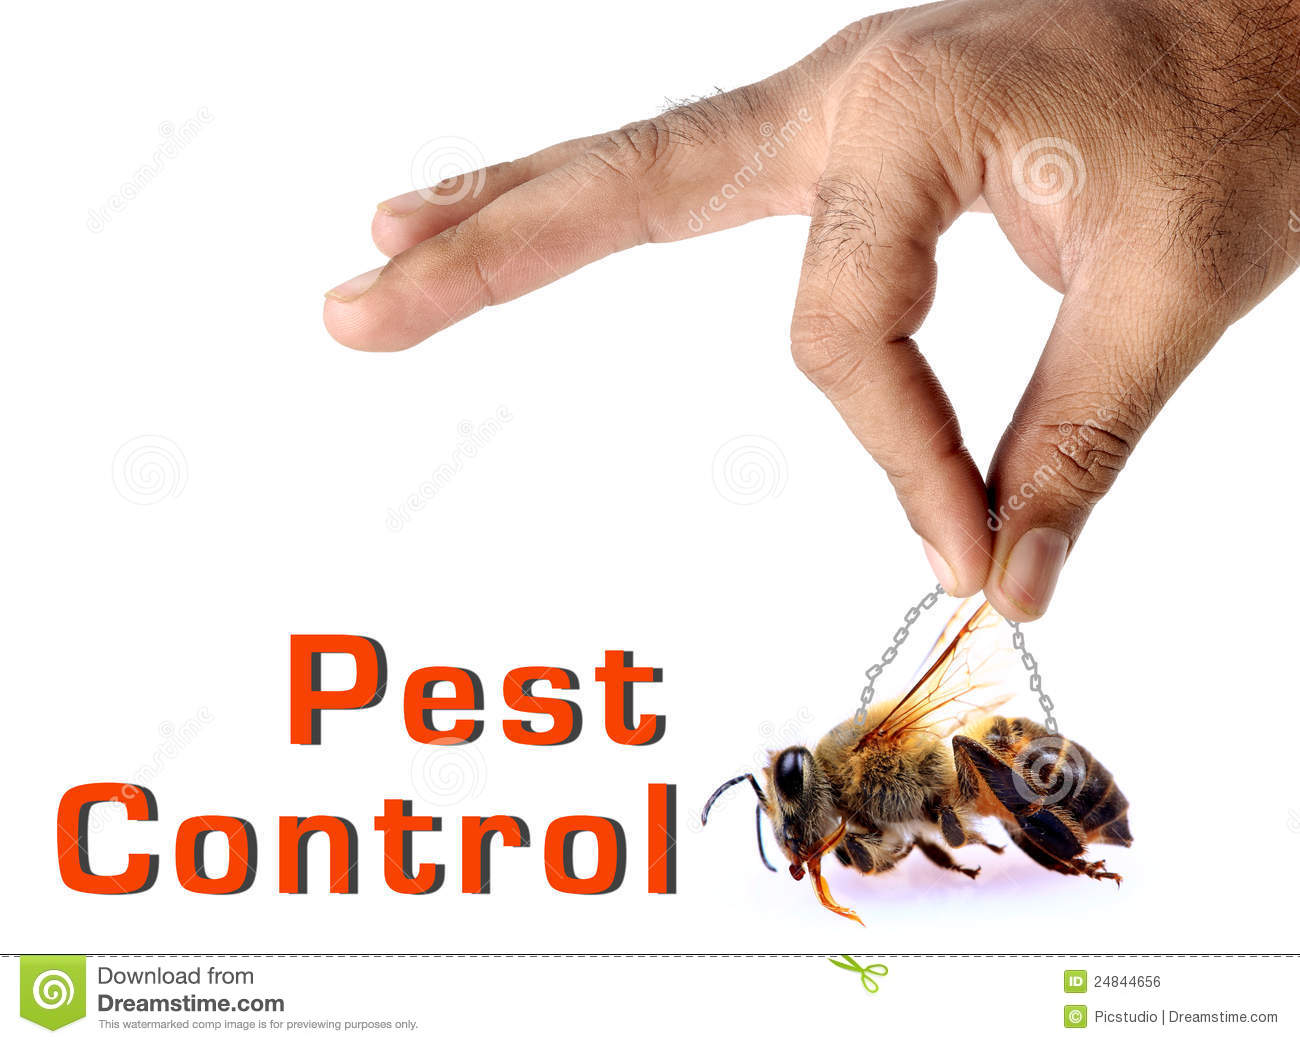 Pest Control Royalty Free Stock Image - Image: 24844656